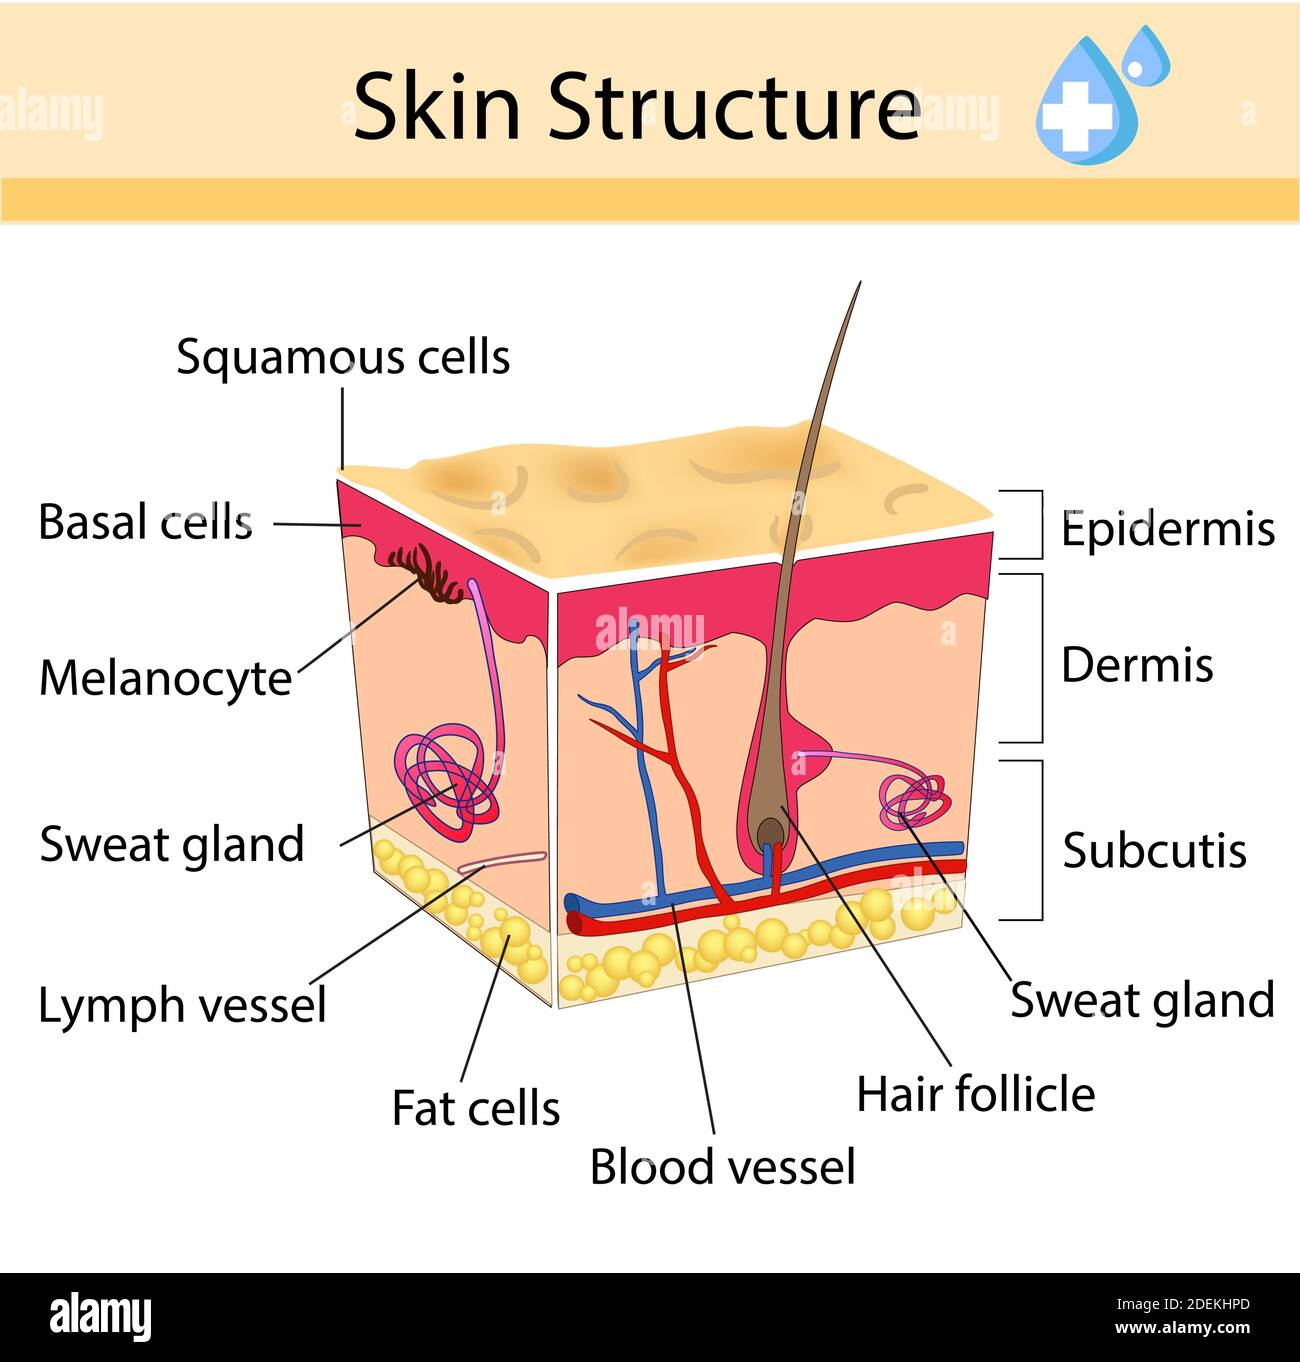 Human Skin Diagram High Resolution Stock Photography and Images - AlamyAlamy